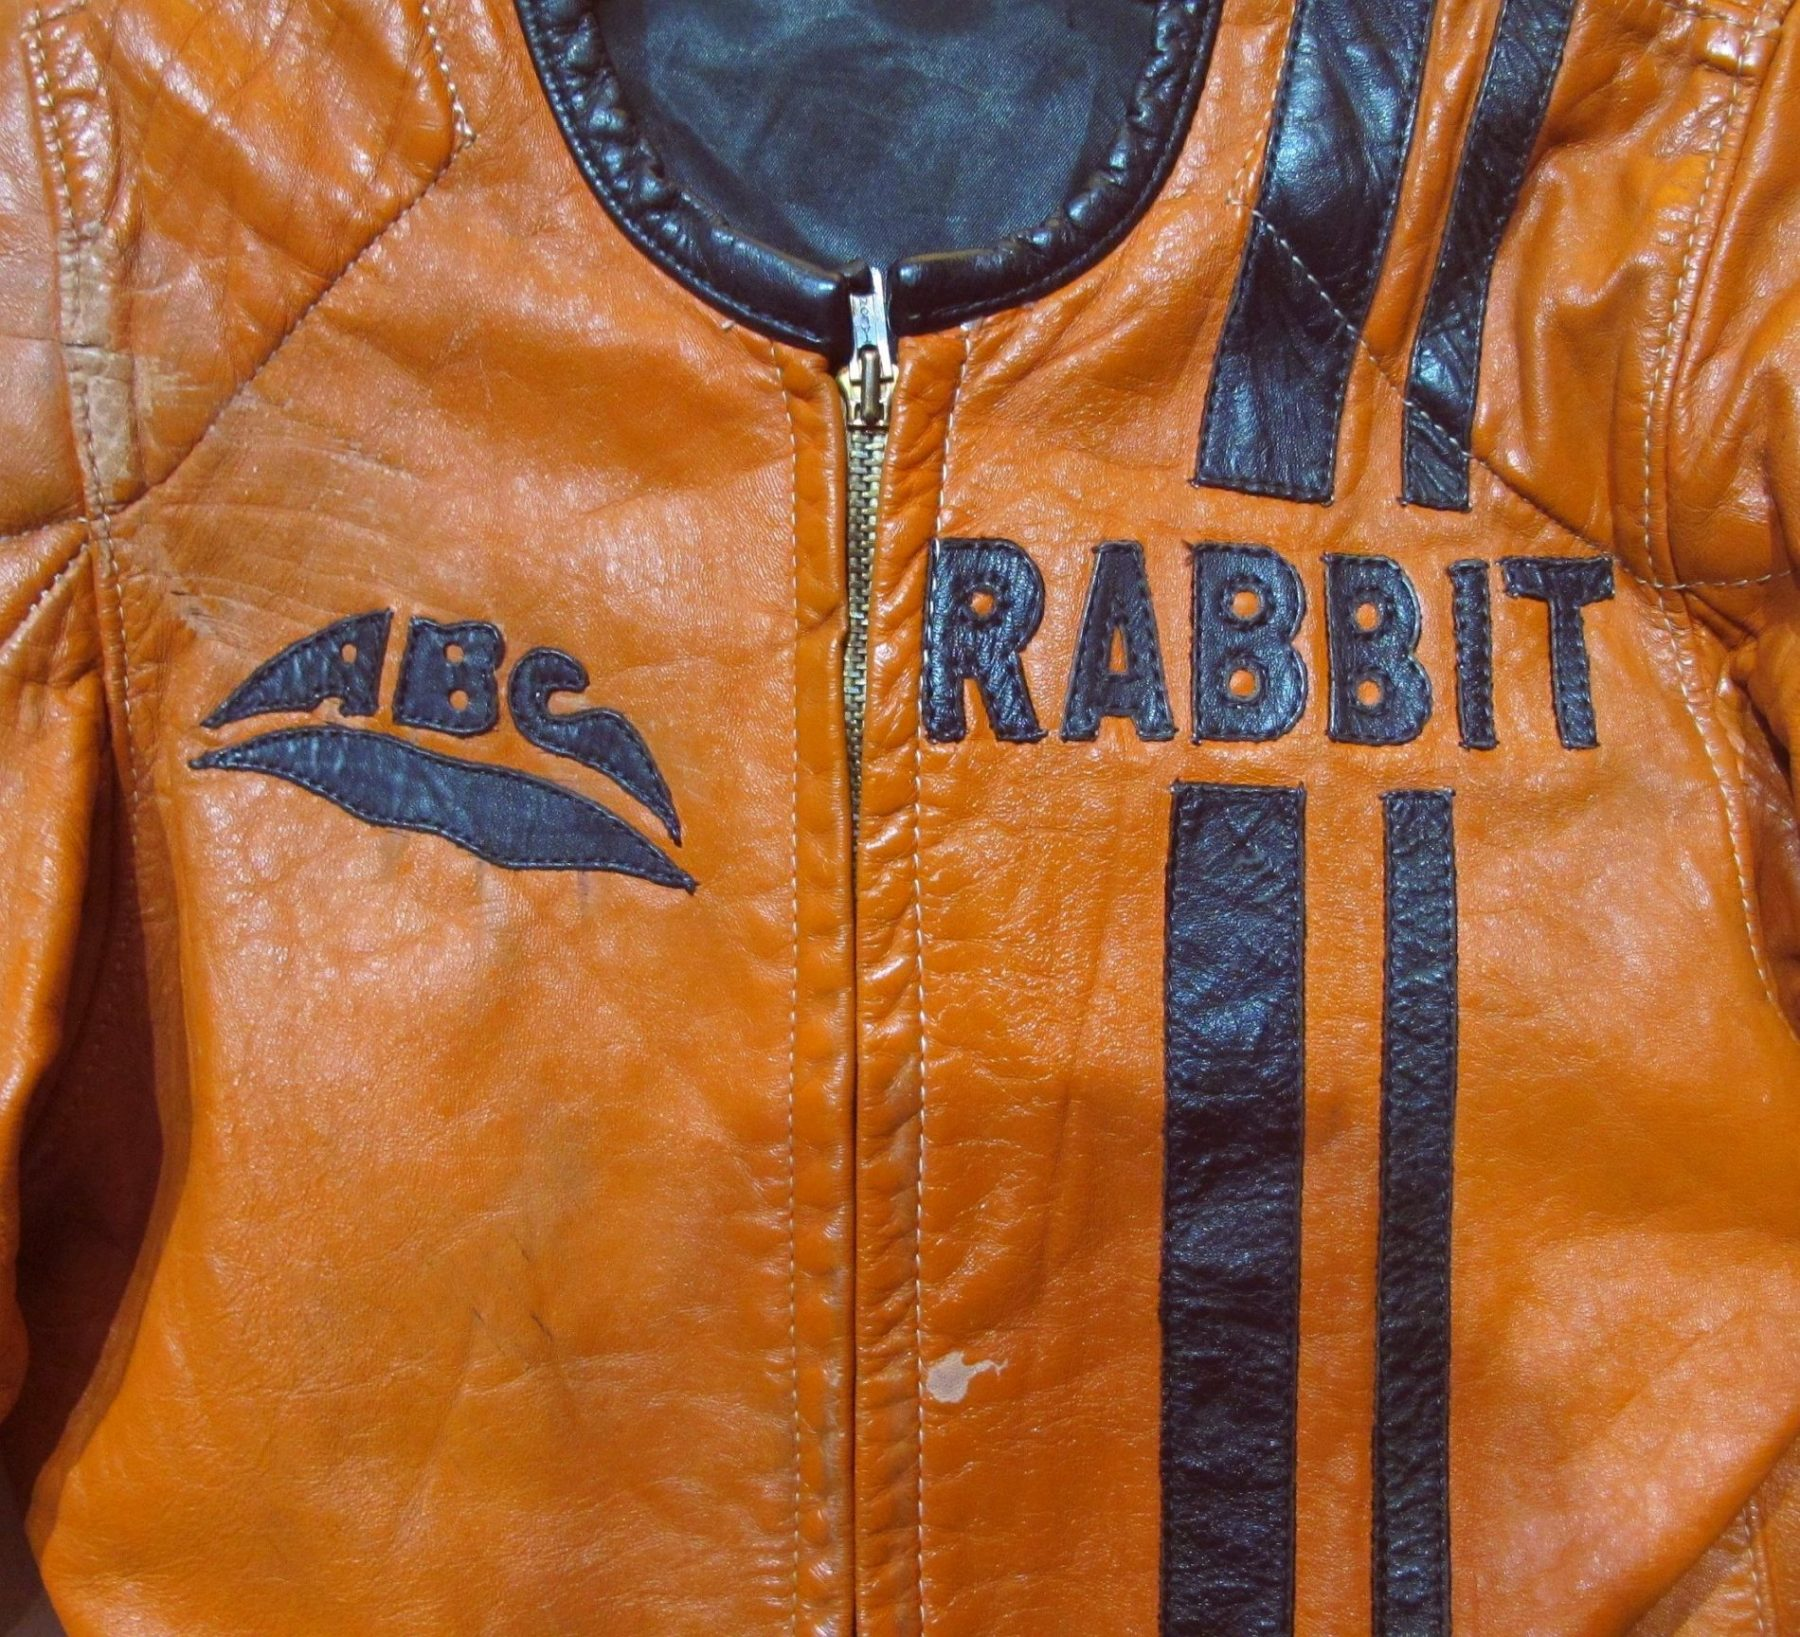 ABC Custom Vintage Race Jacket